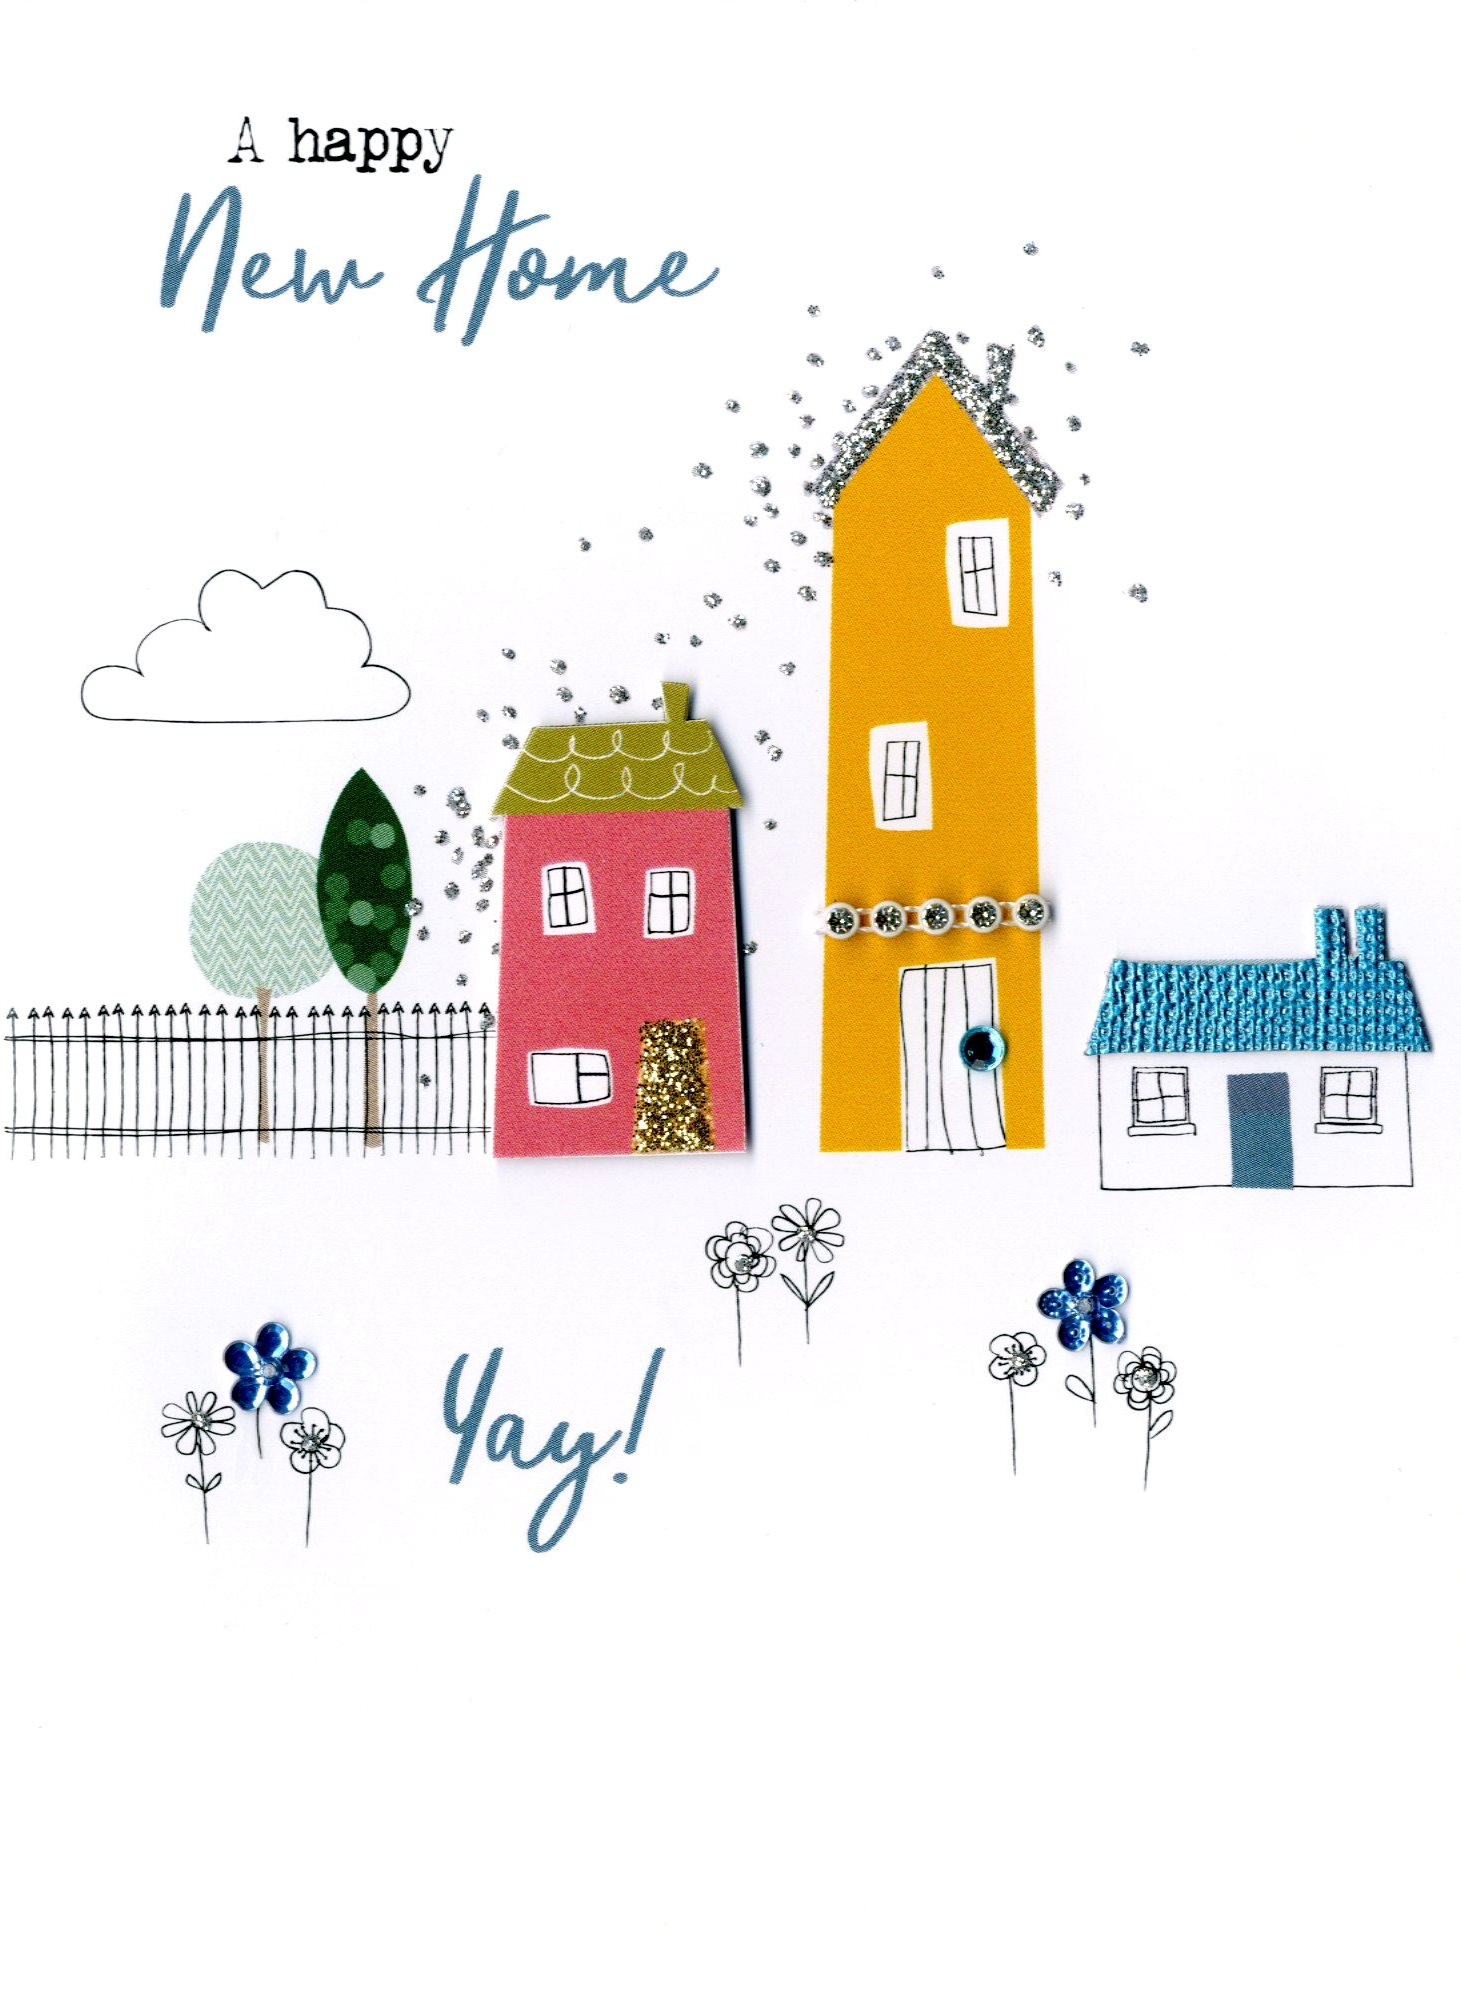 Happy new home yay irresistible greeting card cards love kates happy new home yay irresistible greeting card m4hsunfo